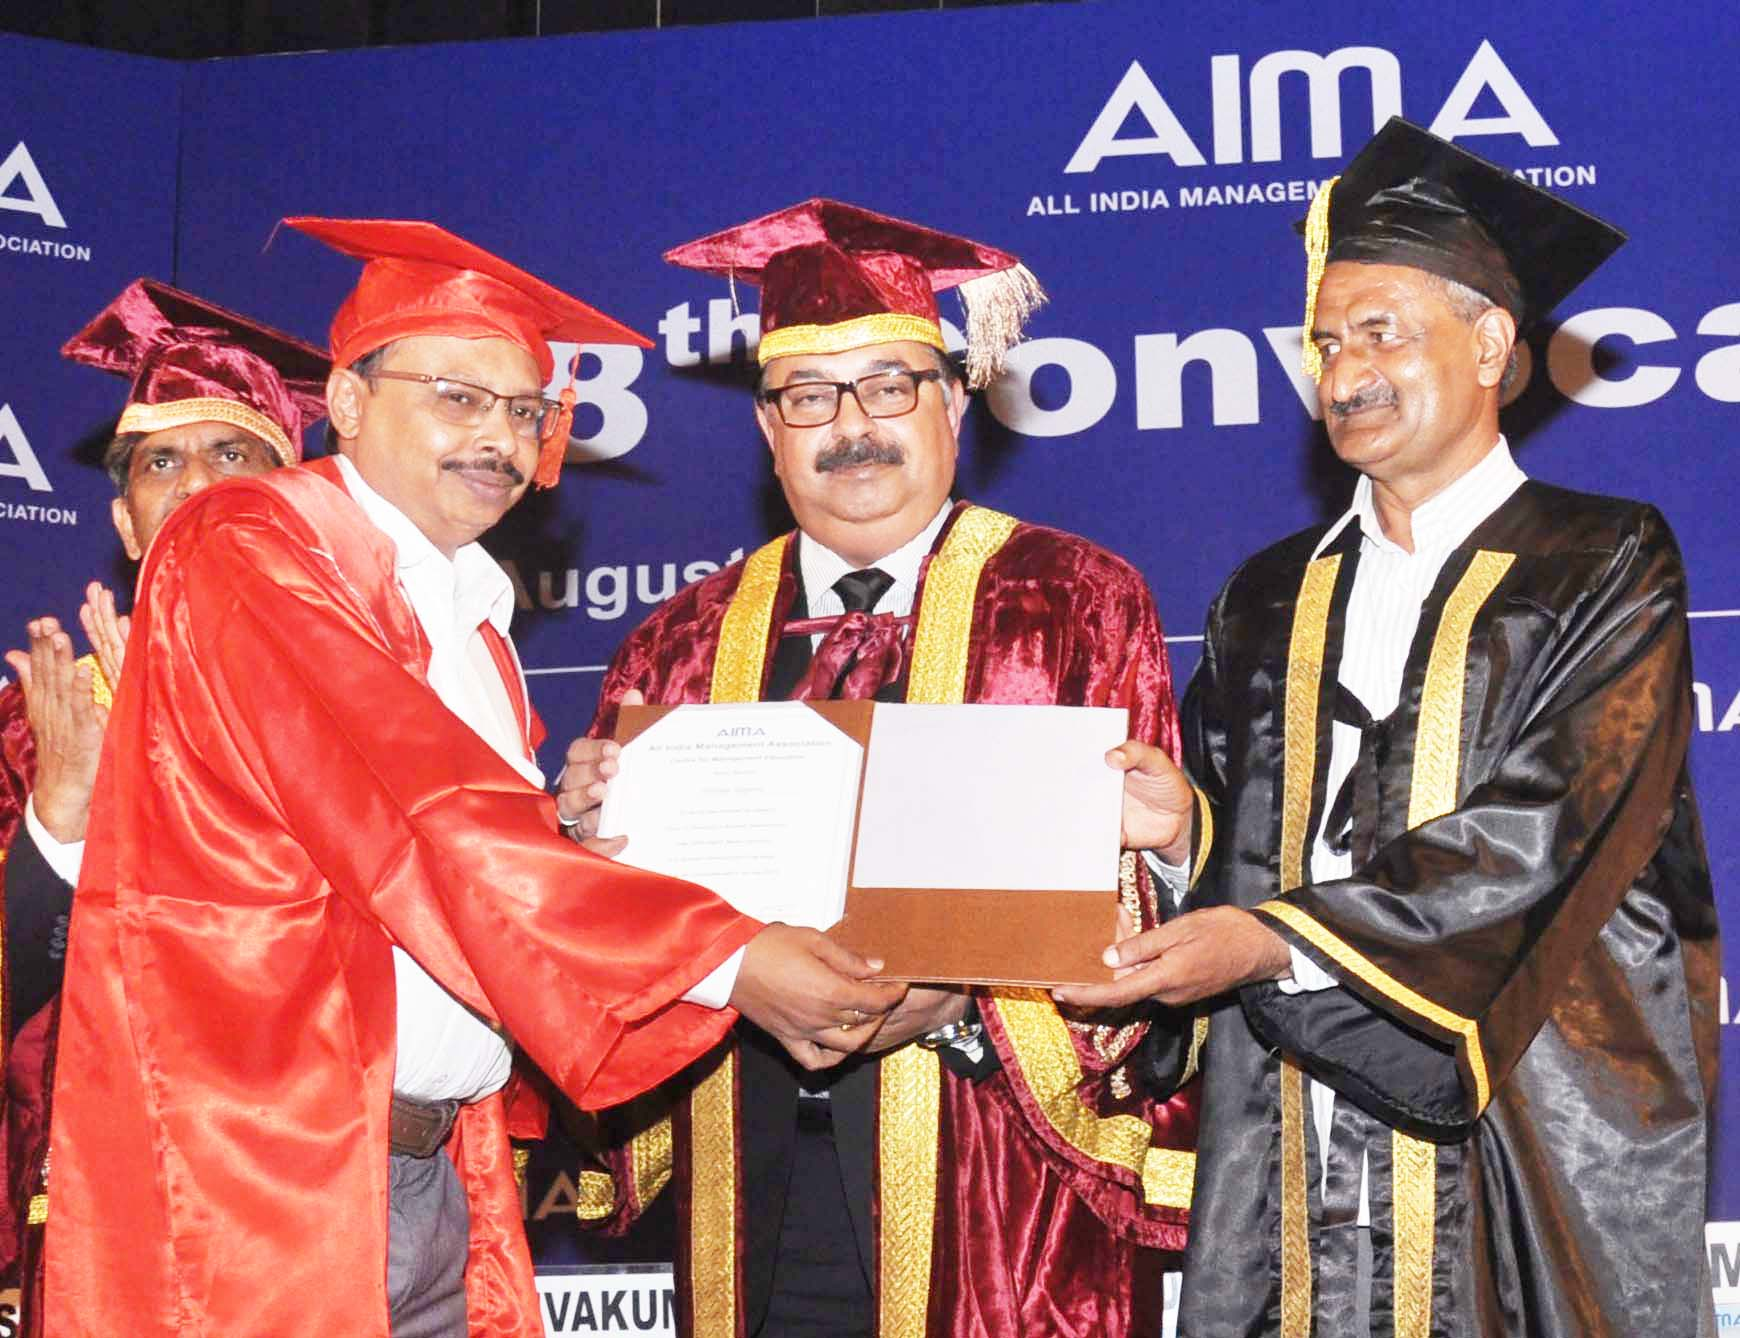 Alekhya Talapatra receiving Doctorate from Sudhir Vasudeva, Chief Managing Director, ONGC